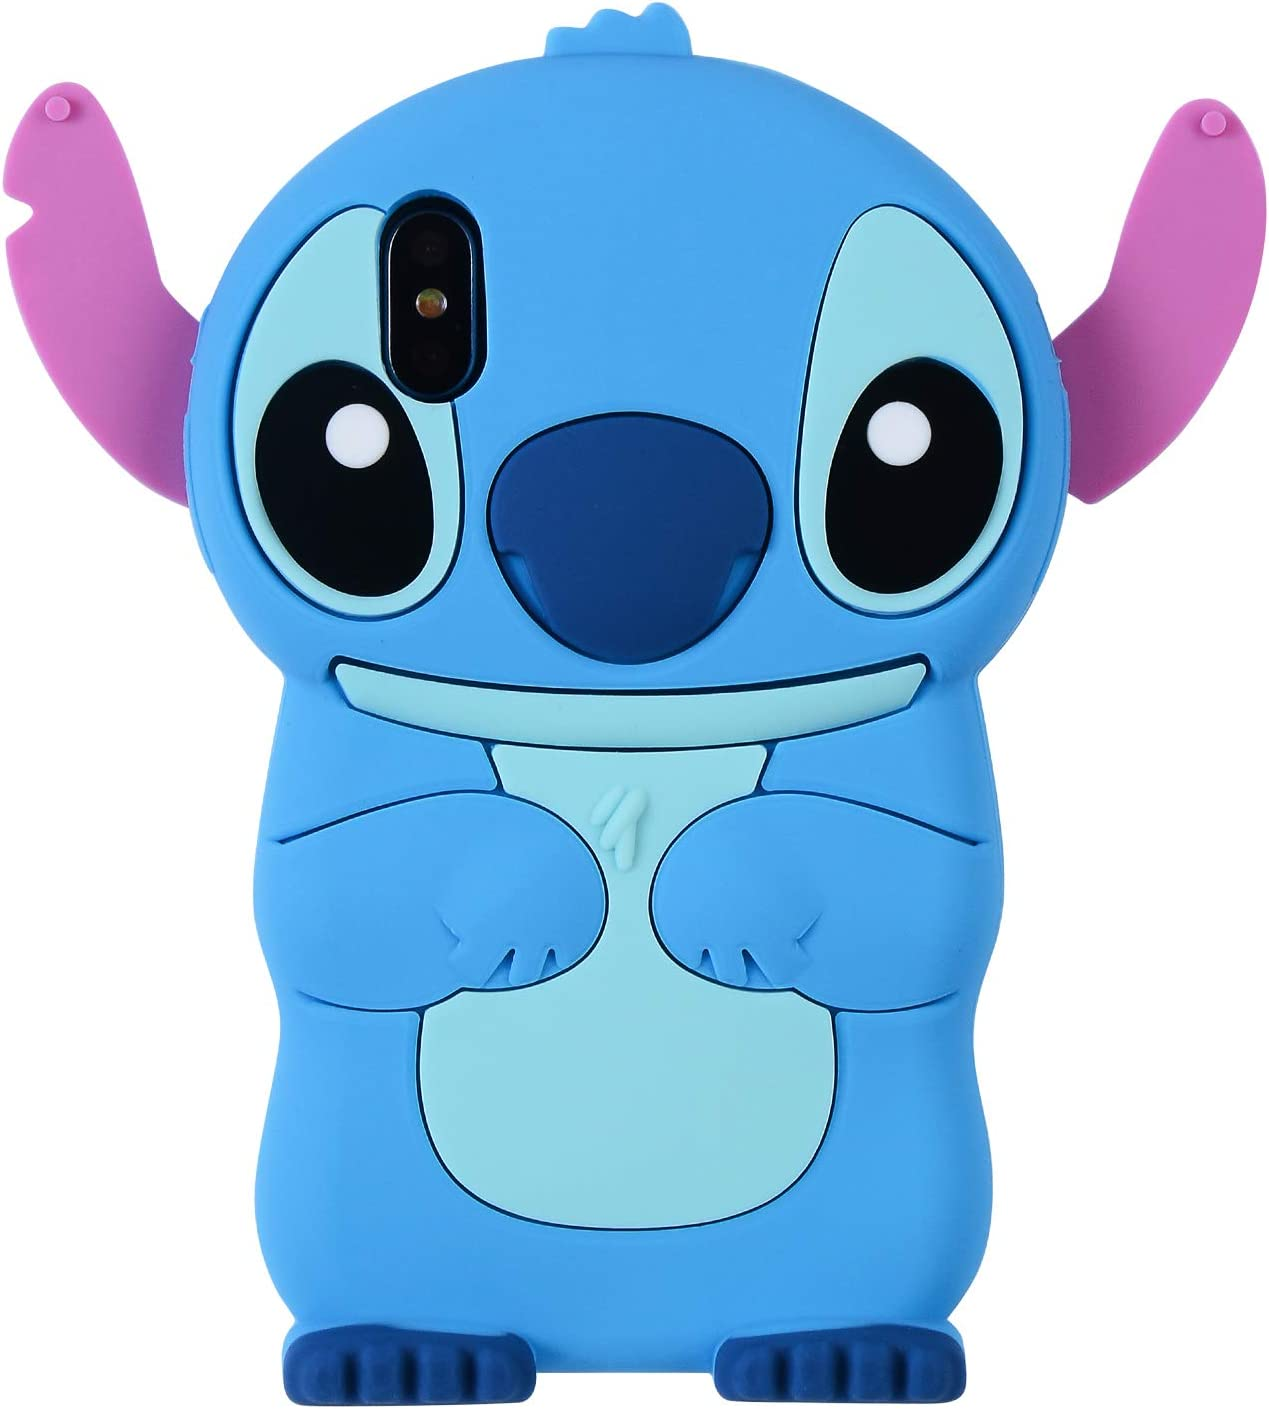 Blue Stch Case for iPhone X/iPhone Xs 5.8 inch, 3D Cartoon Animal Cute Soft Silicone Rubber Protective Cover,Kawaii Animated Stylish Fashion Cool Skin Shell for Kids Child Teens Girls (iPhoneXS/X)